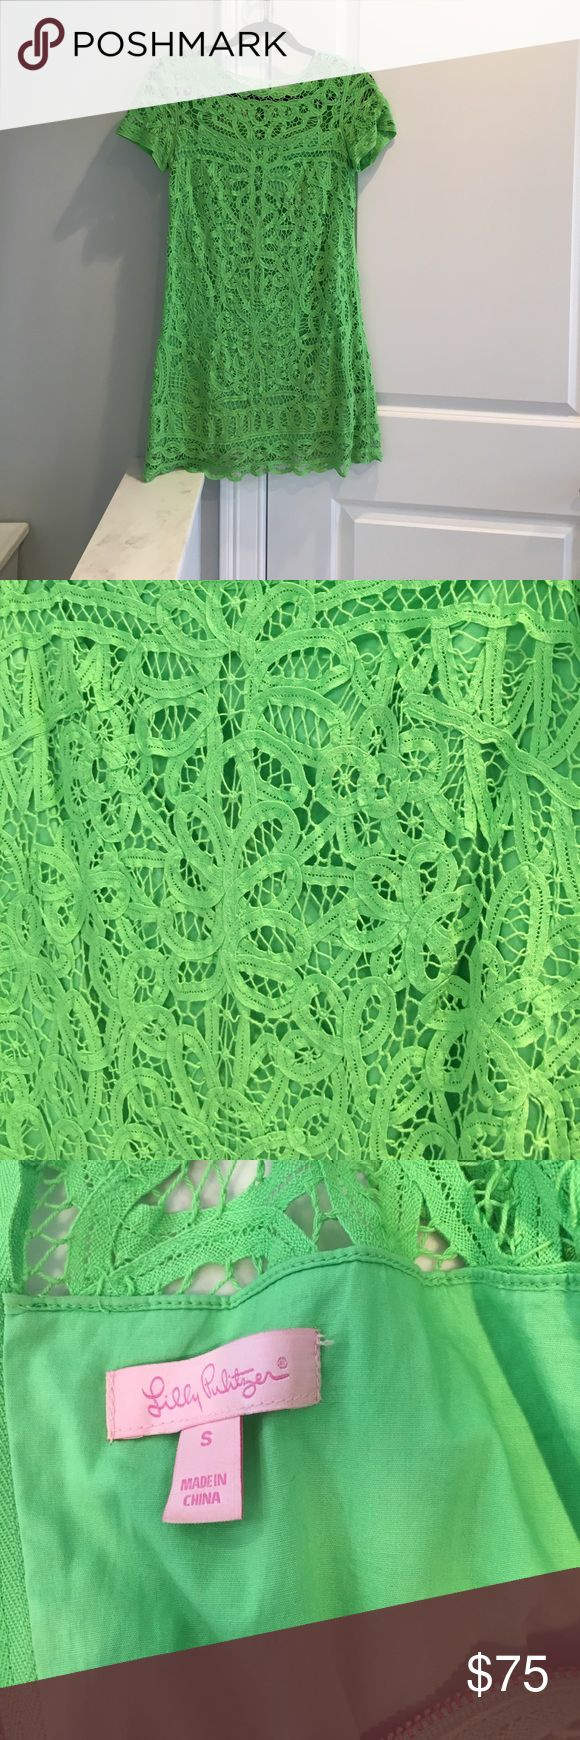 Lilly Pulitzer lime green lace shift Lime green short sleeve lace shift dress Lilly Pulitzer Dresses Mini